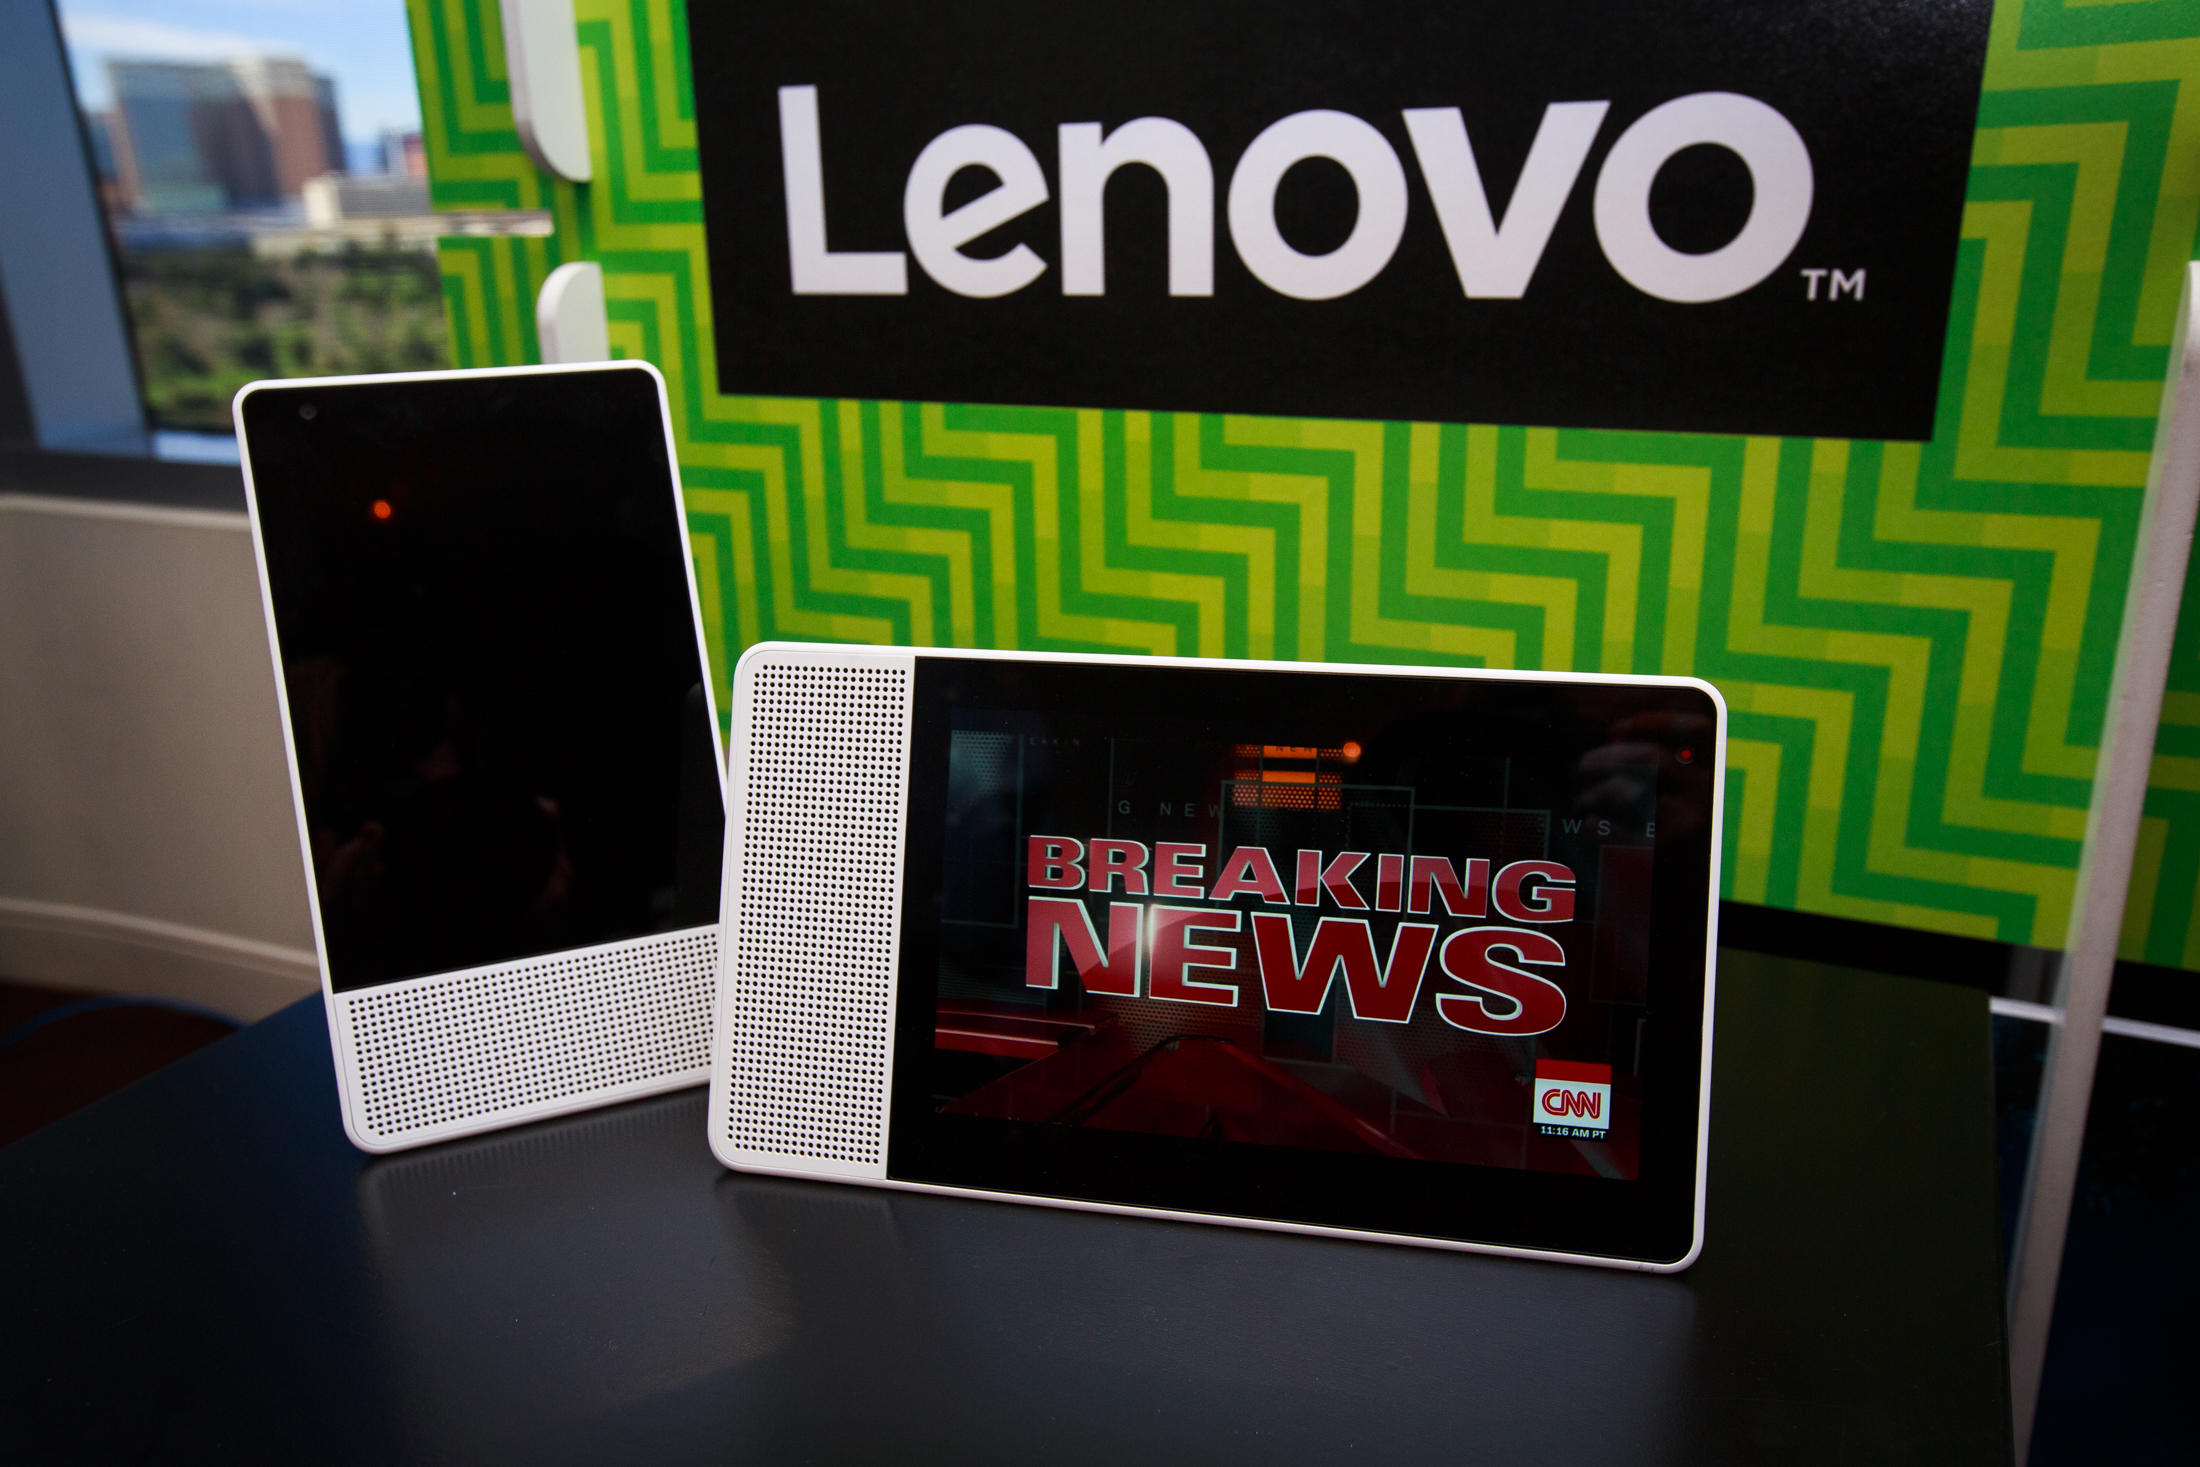 lenovo-smart-display-with-google-assistant-3292-013